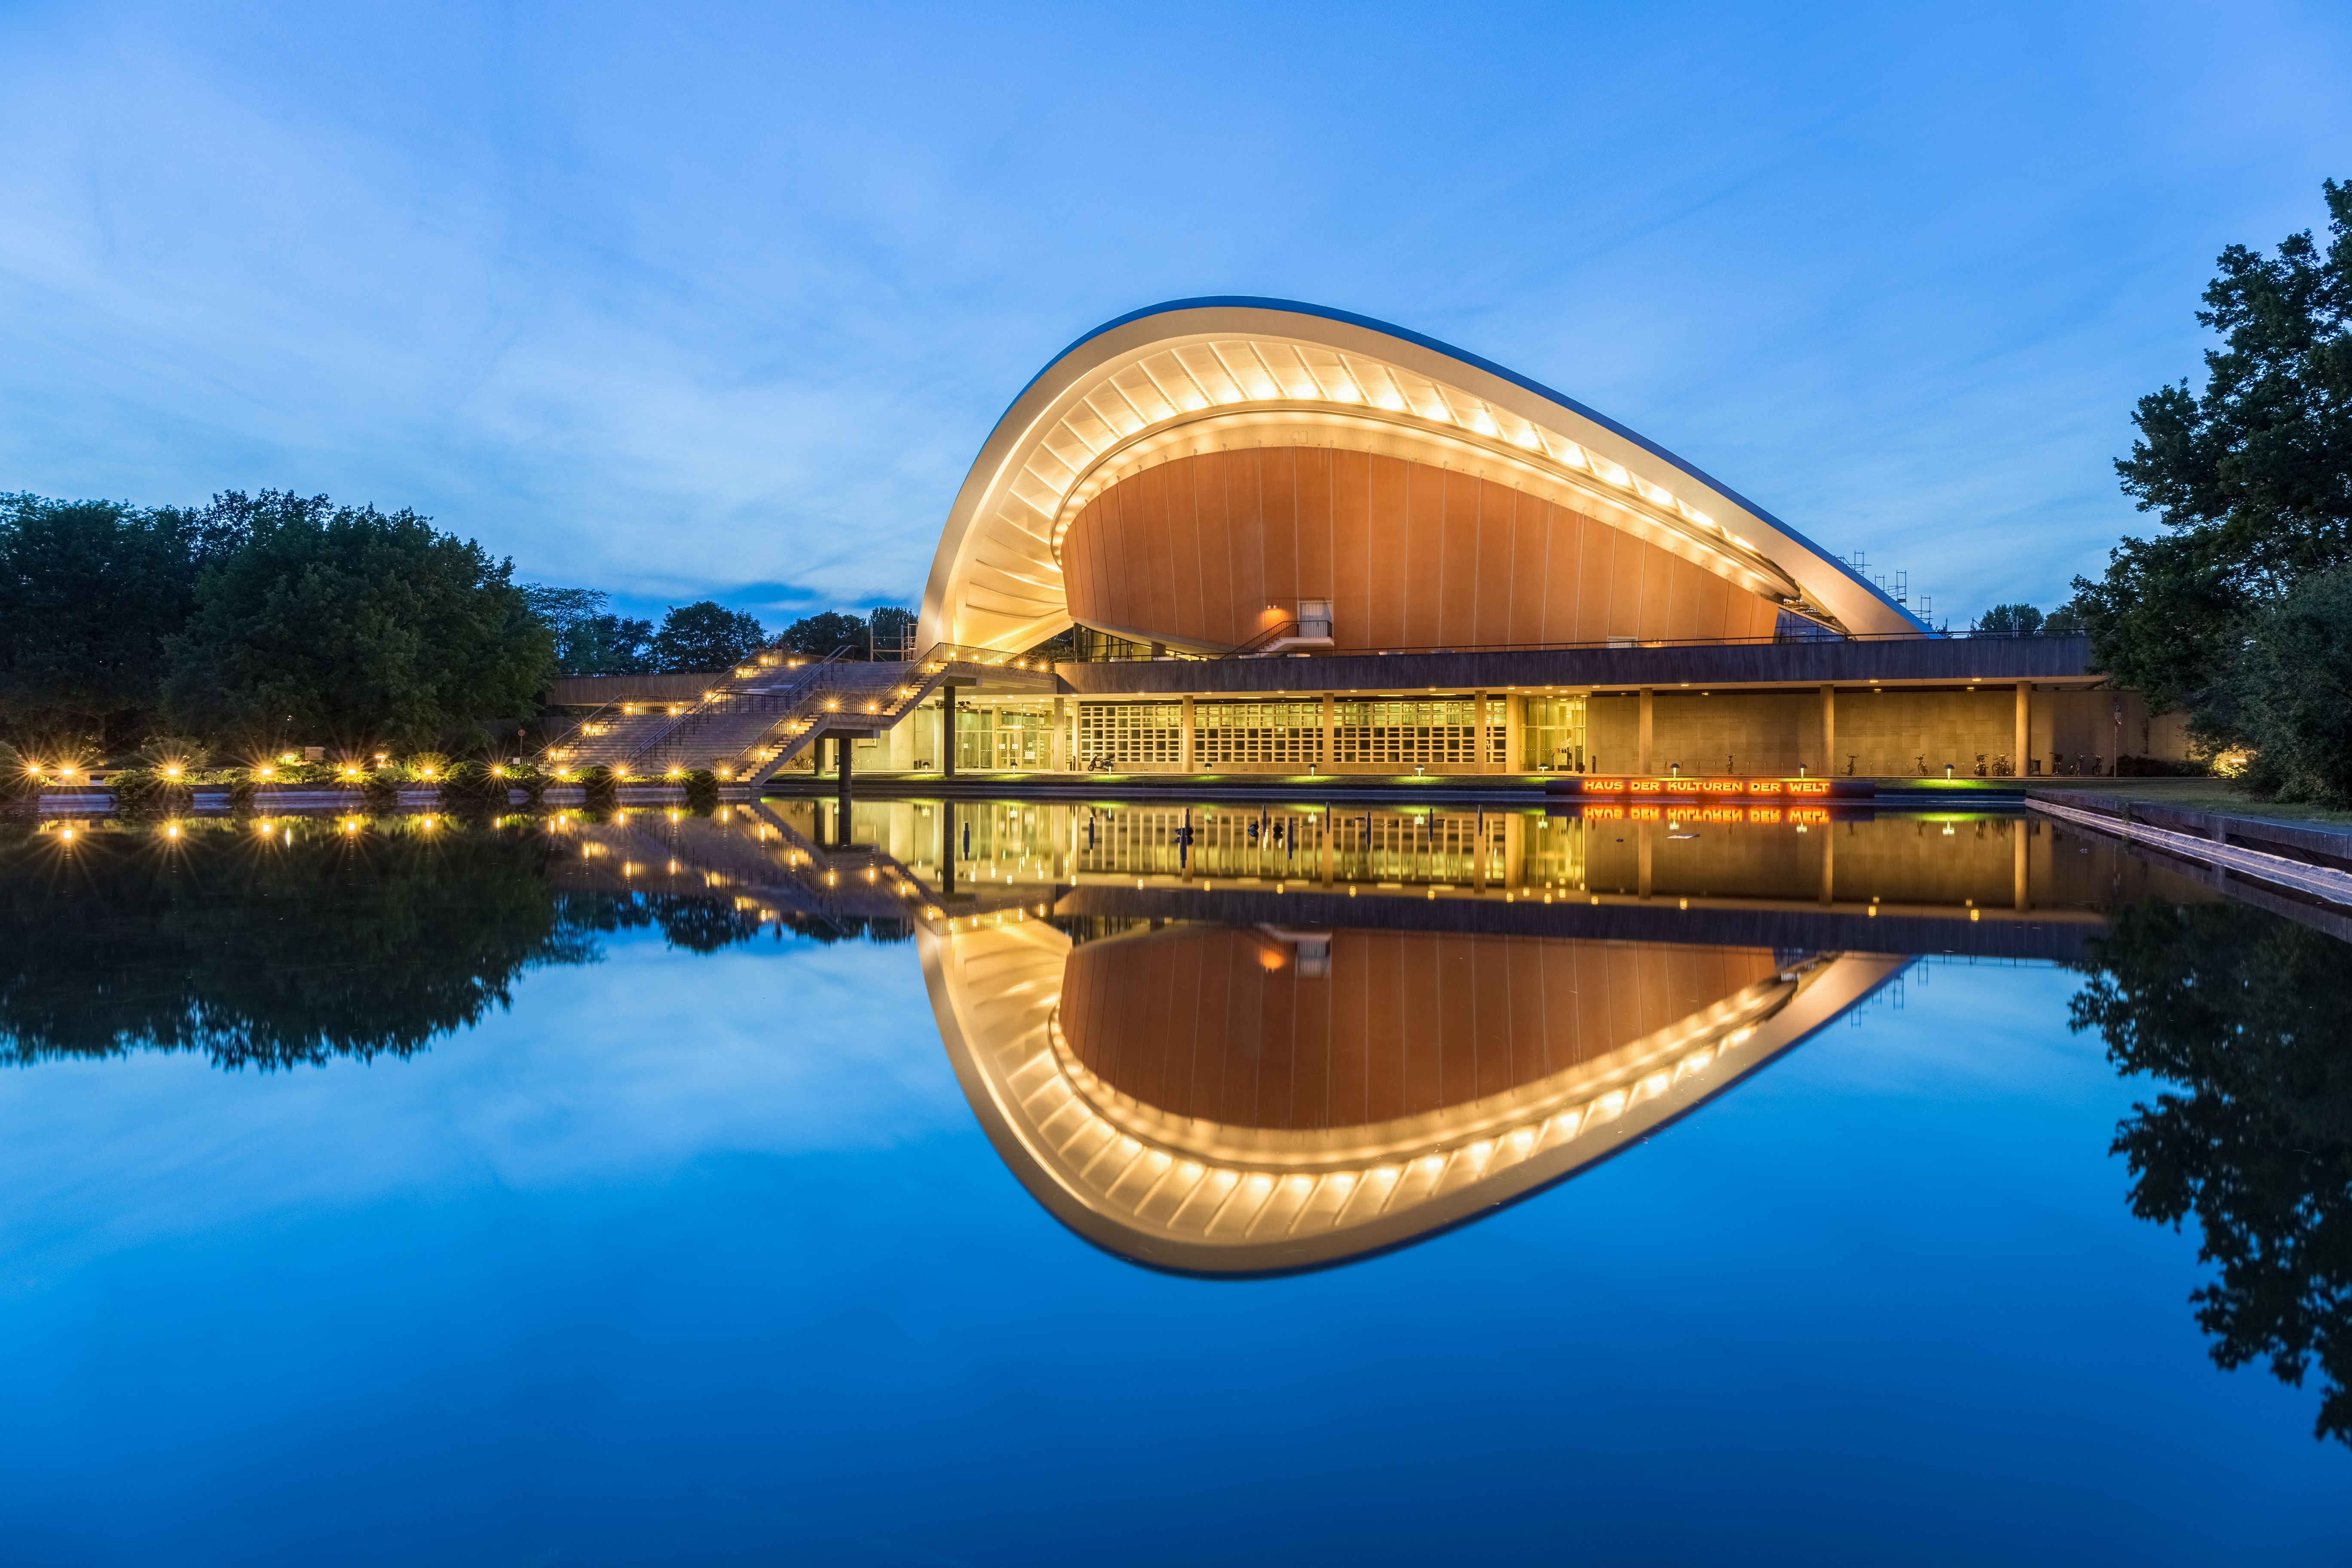 Picture Of The Day For May 20 2018 By Wikipedia Haus Der Kulturen Der Welt Berlin The Building Is Located In The Tiergarten Park It Was Formerly Known As The